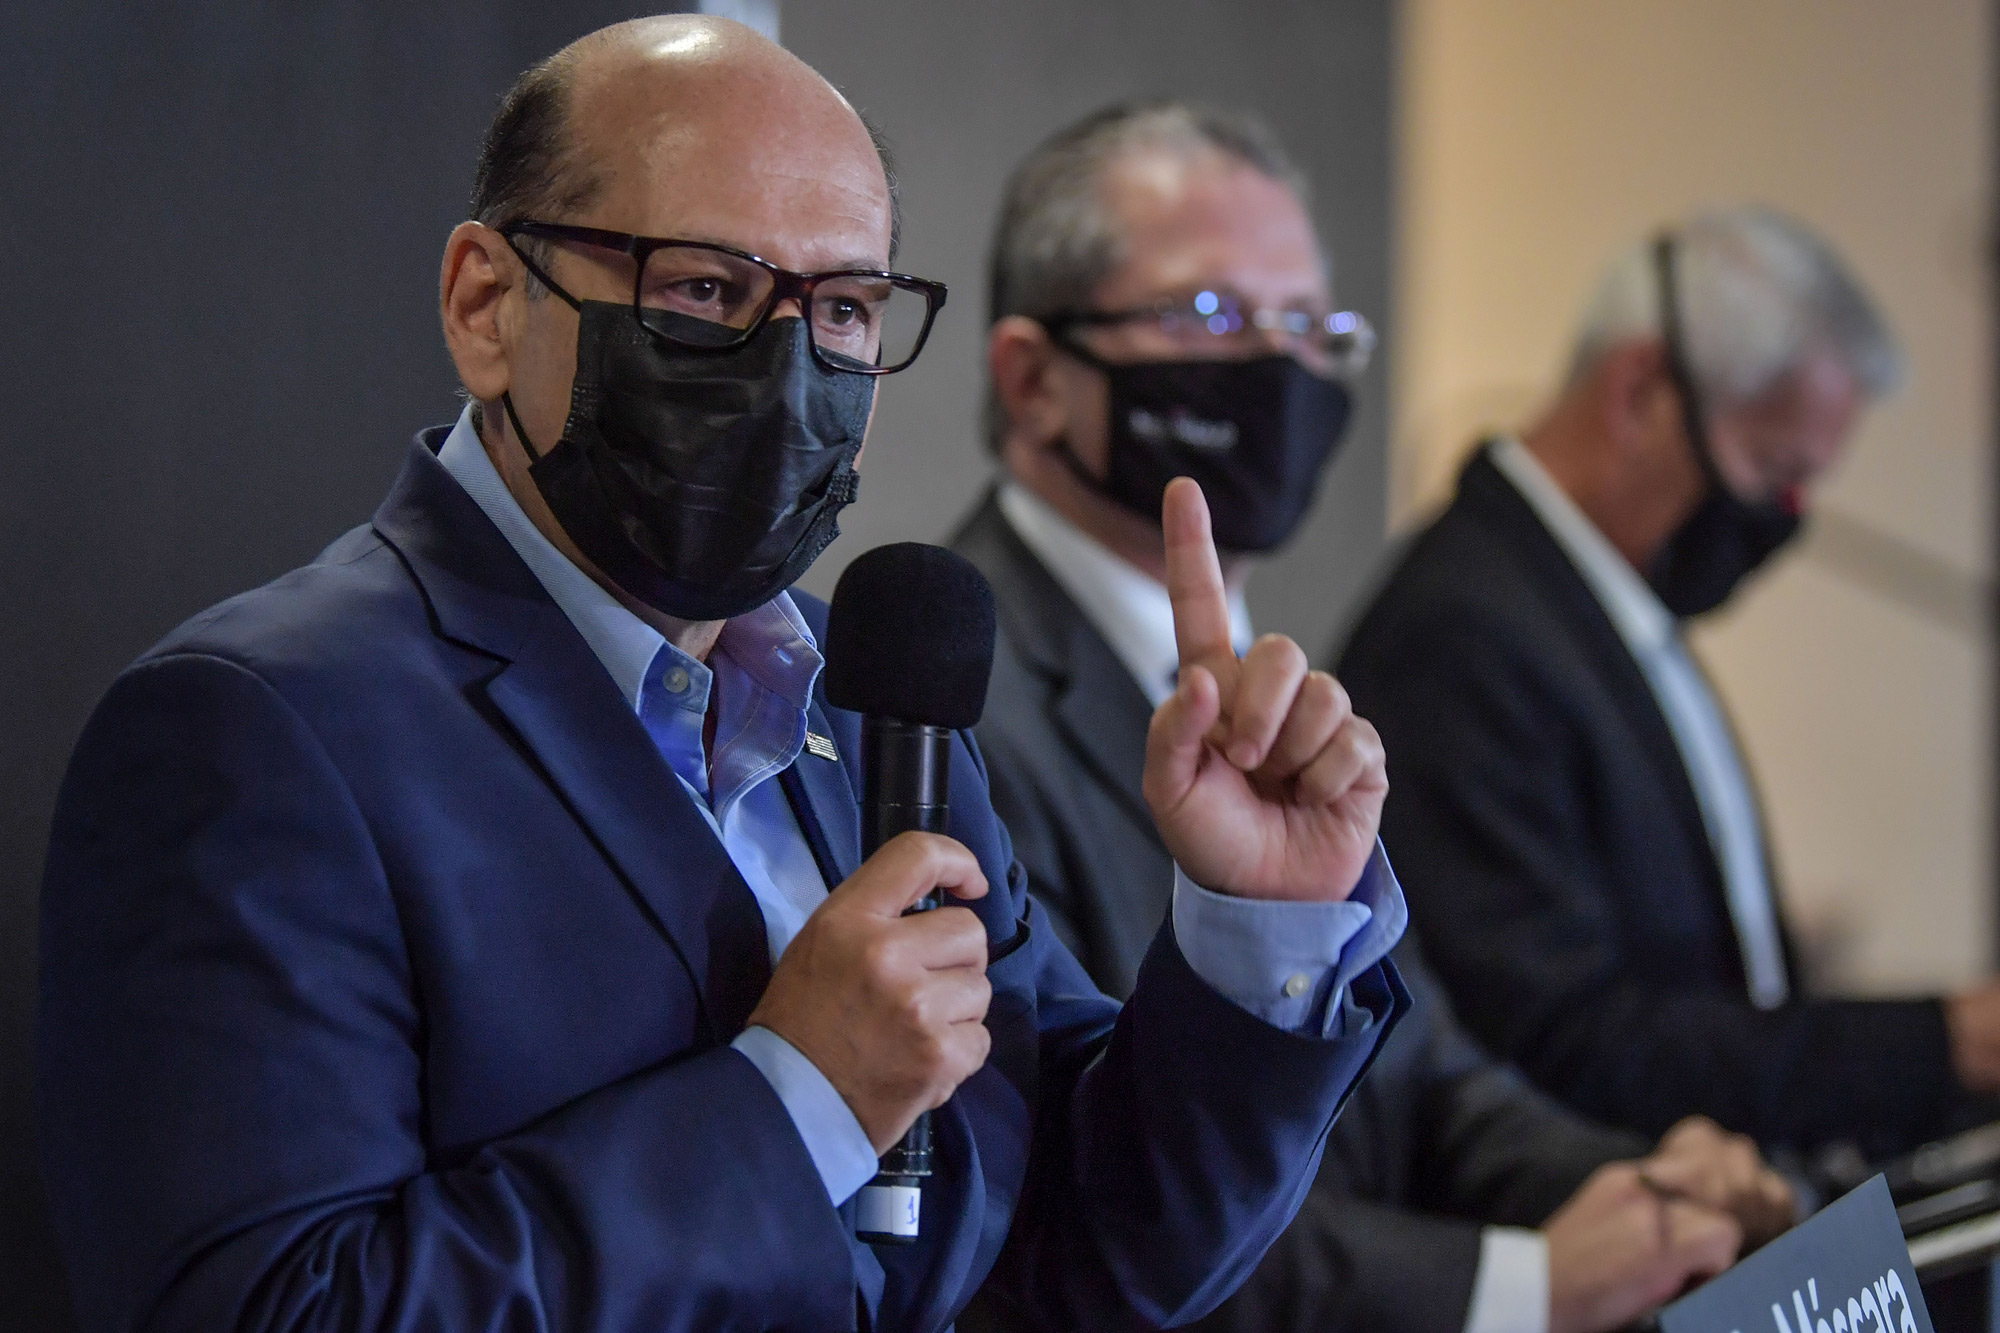 The Director of the Butantan Institute Dimas Covas speaks during a press conference at Butantan's headquarters in Sao Paulo, Brazil, on November 10.